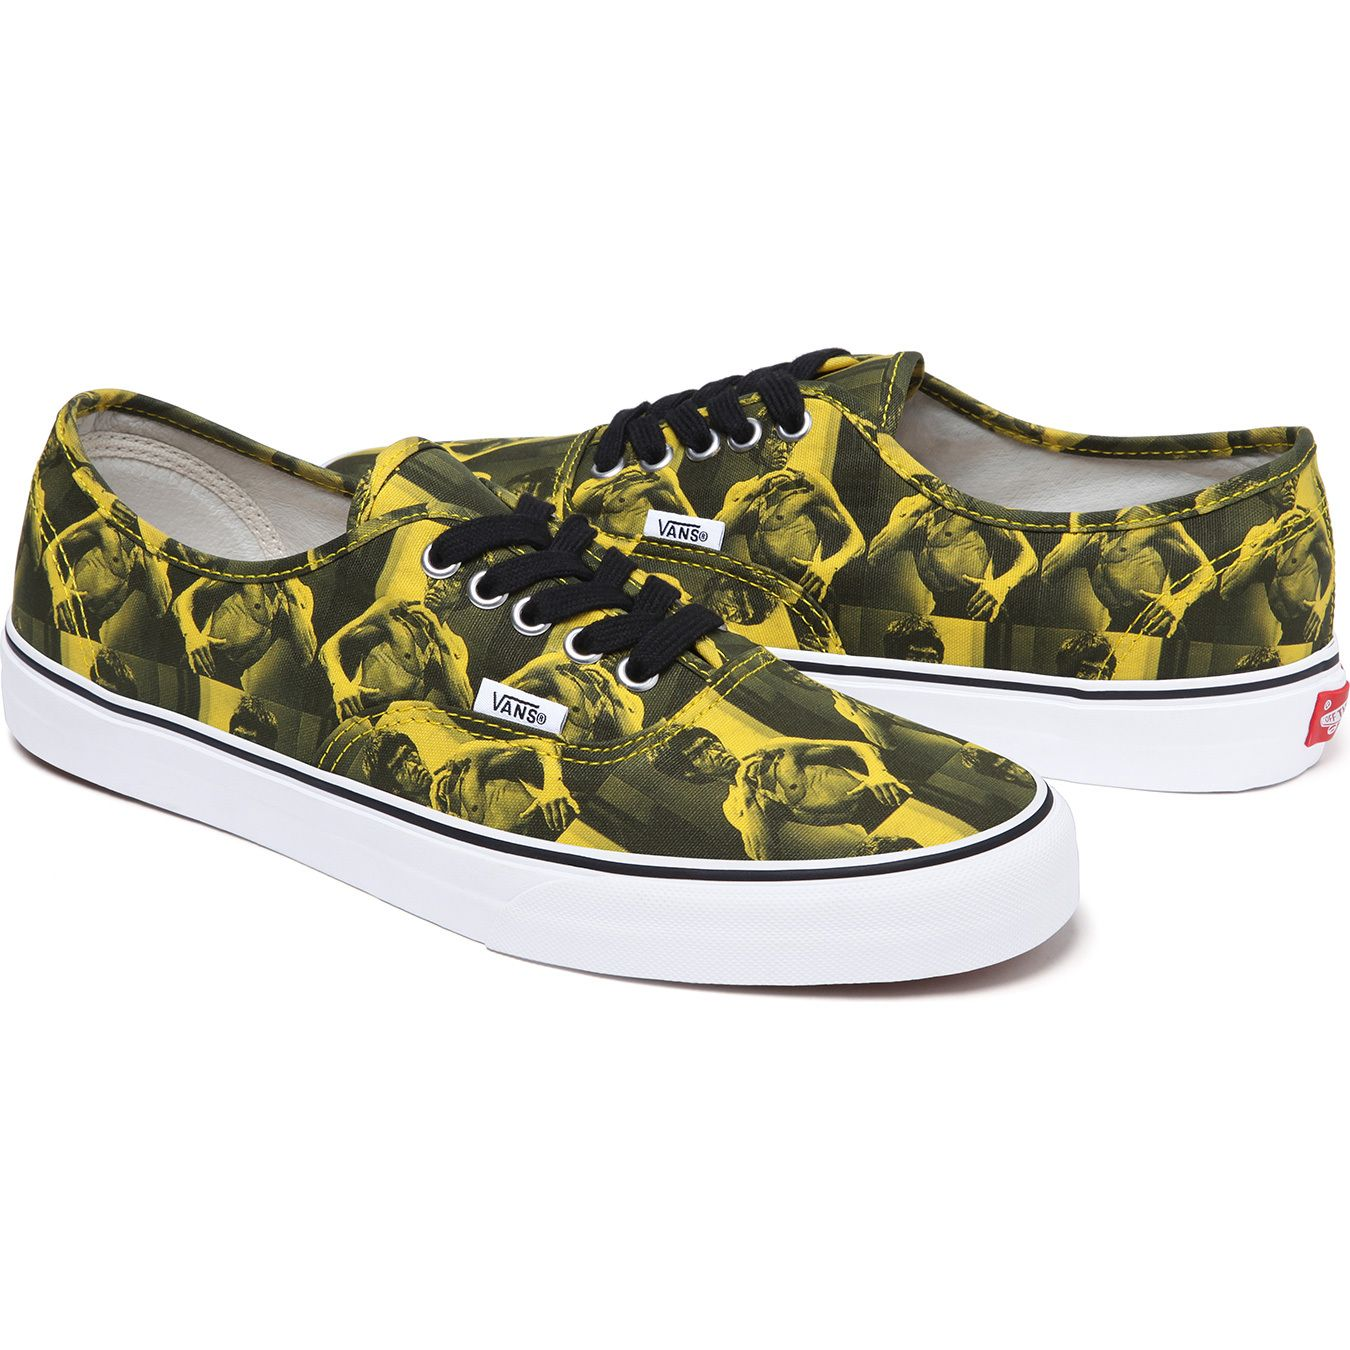 a876878a96 Supreme Bruce Lee Vans Authentic - Yellow